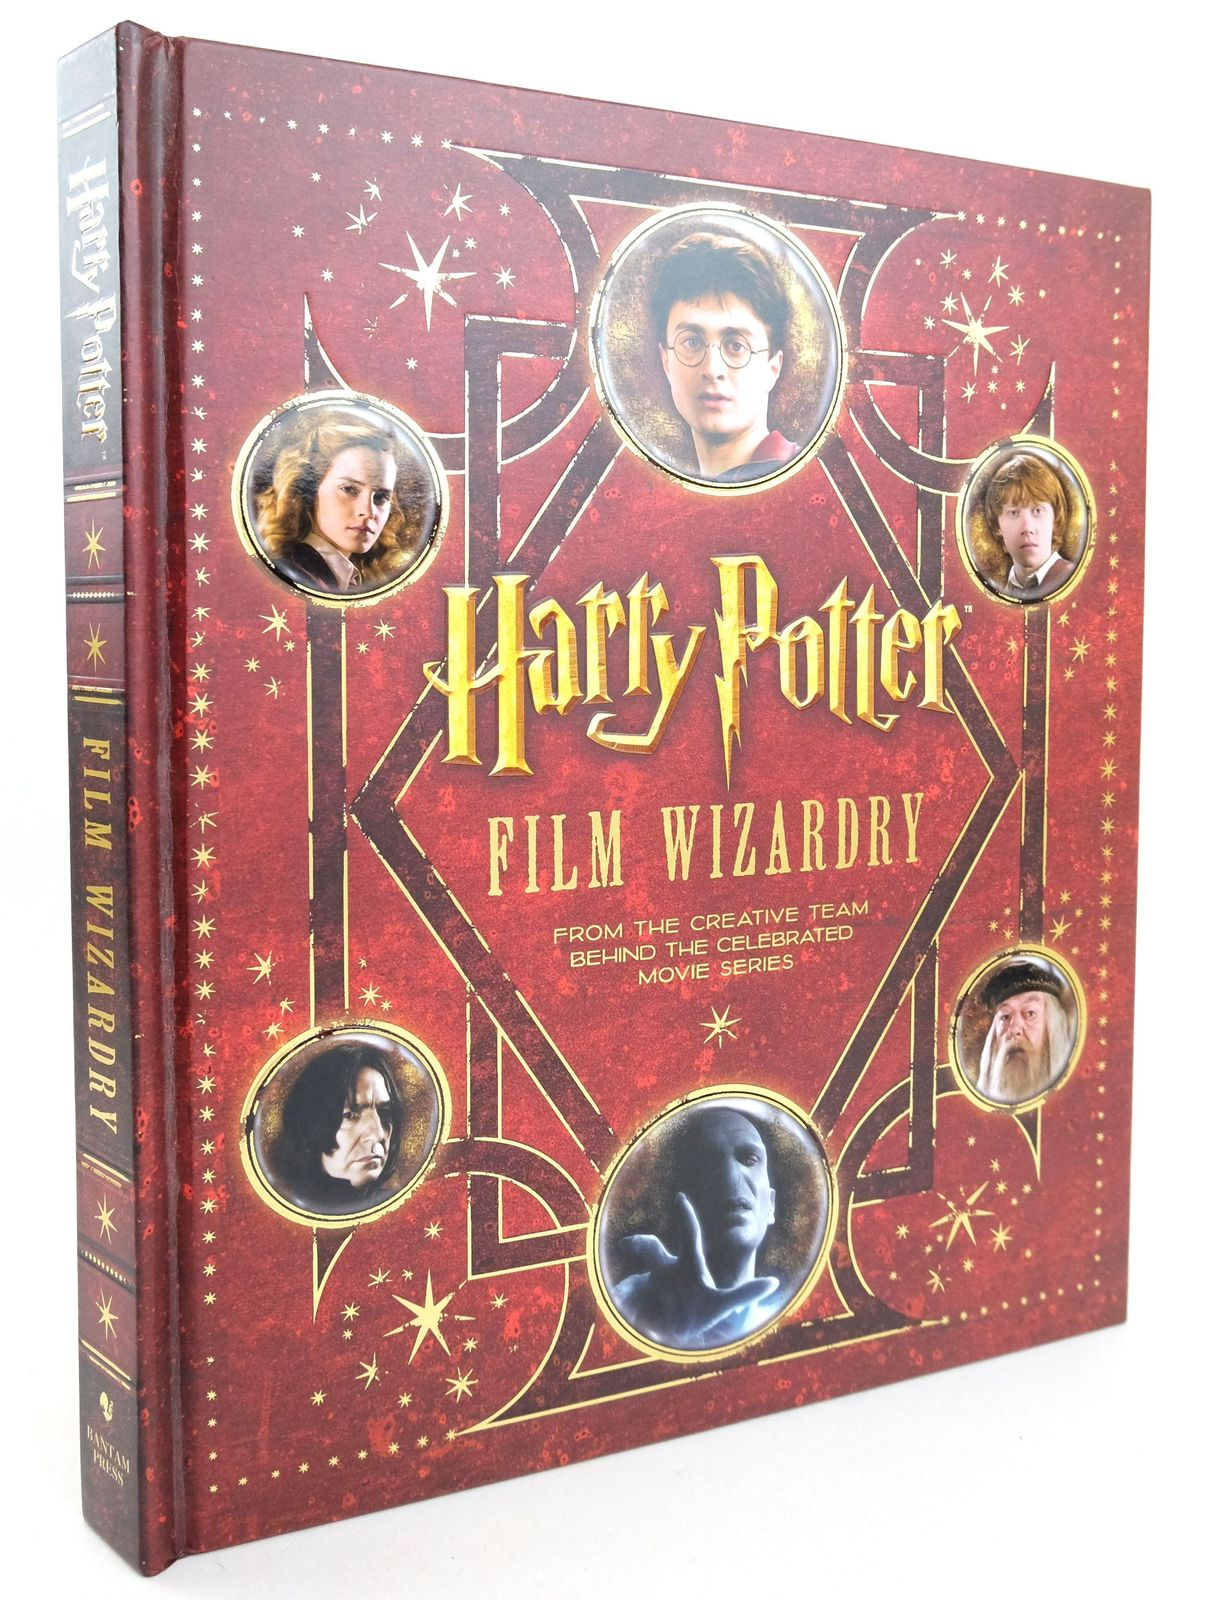 Photo of HARRY POTTER FILM WIZARDRY written by Sibley, Brian published by Bantam Press (STOCK CODE: 1819365)  for sale by Stella & Rose's Books